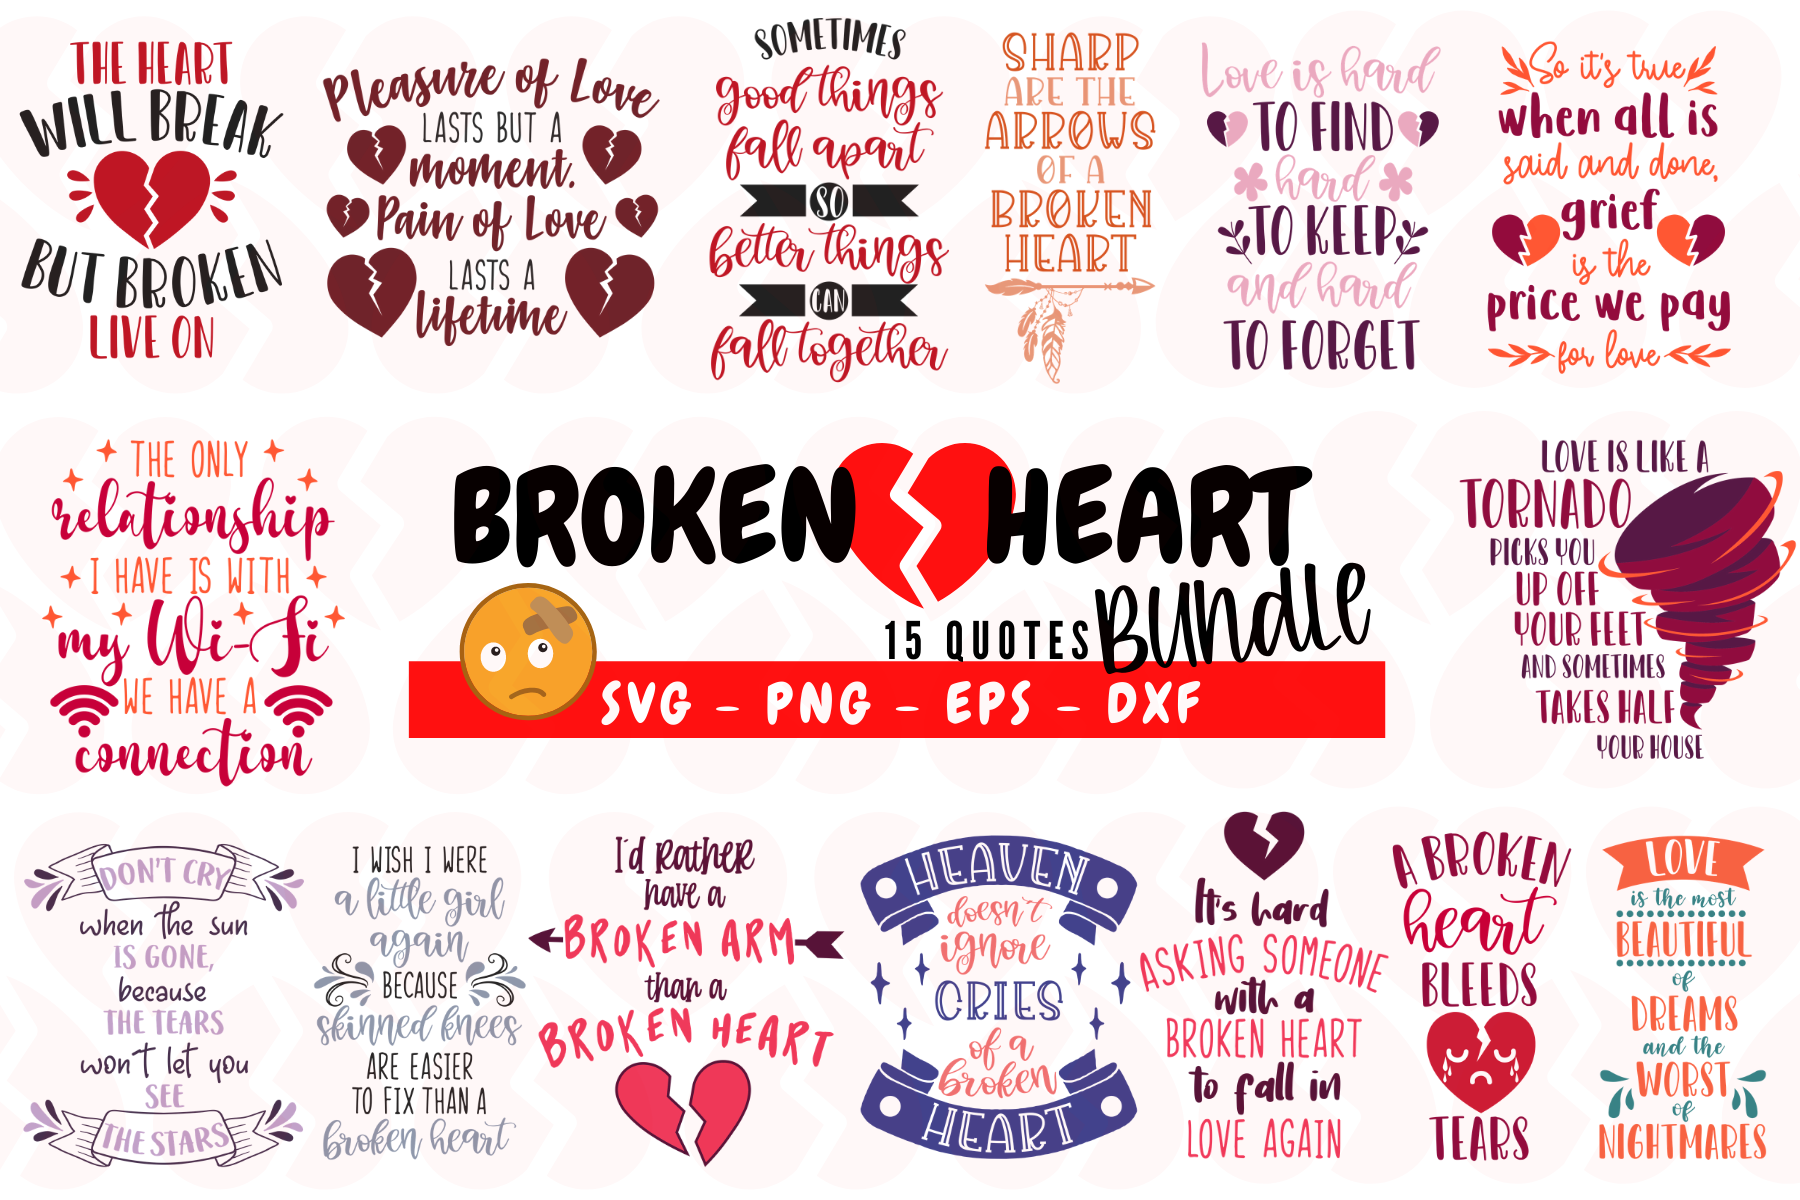 Broken Heart Bundle (Graphic) by Graphipedia di 2020